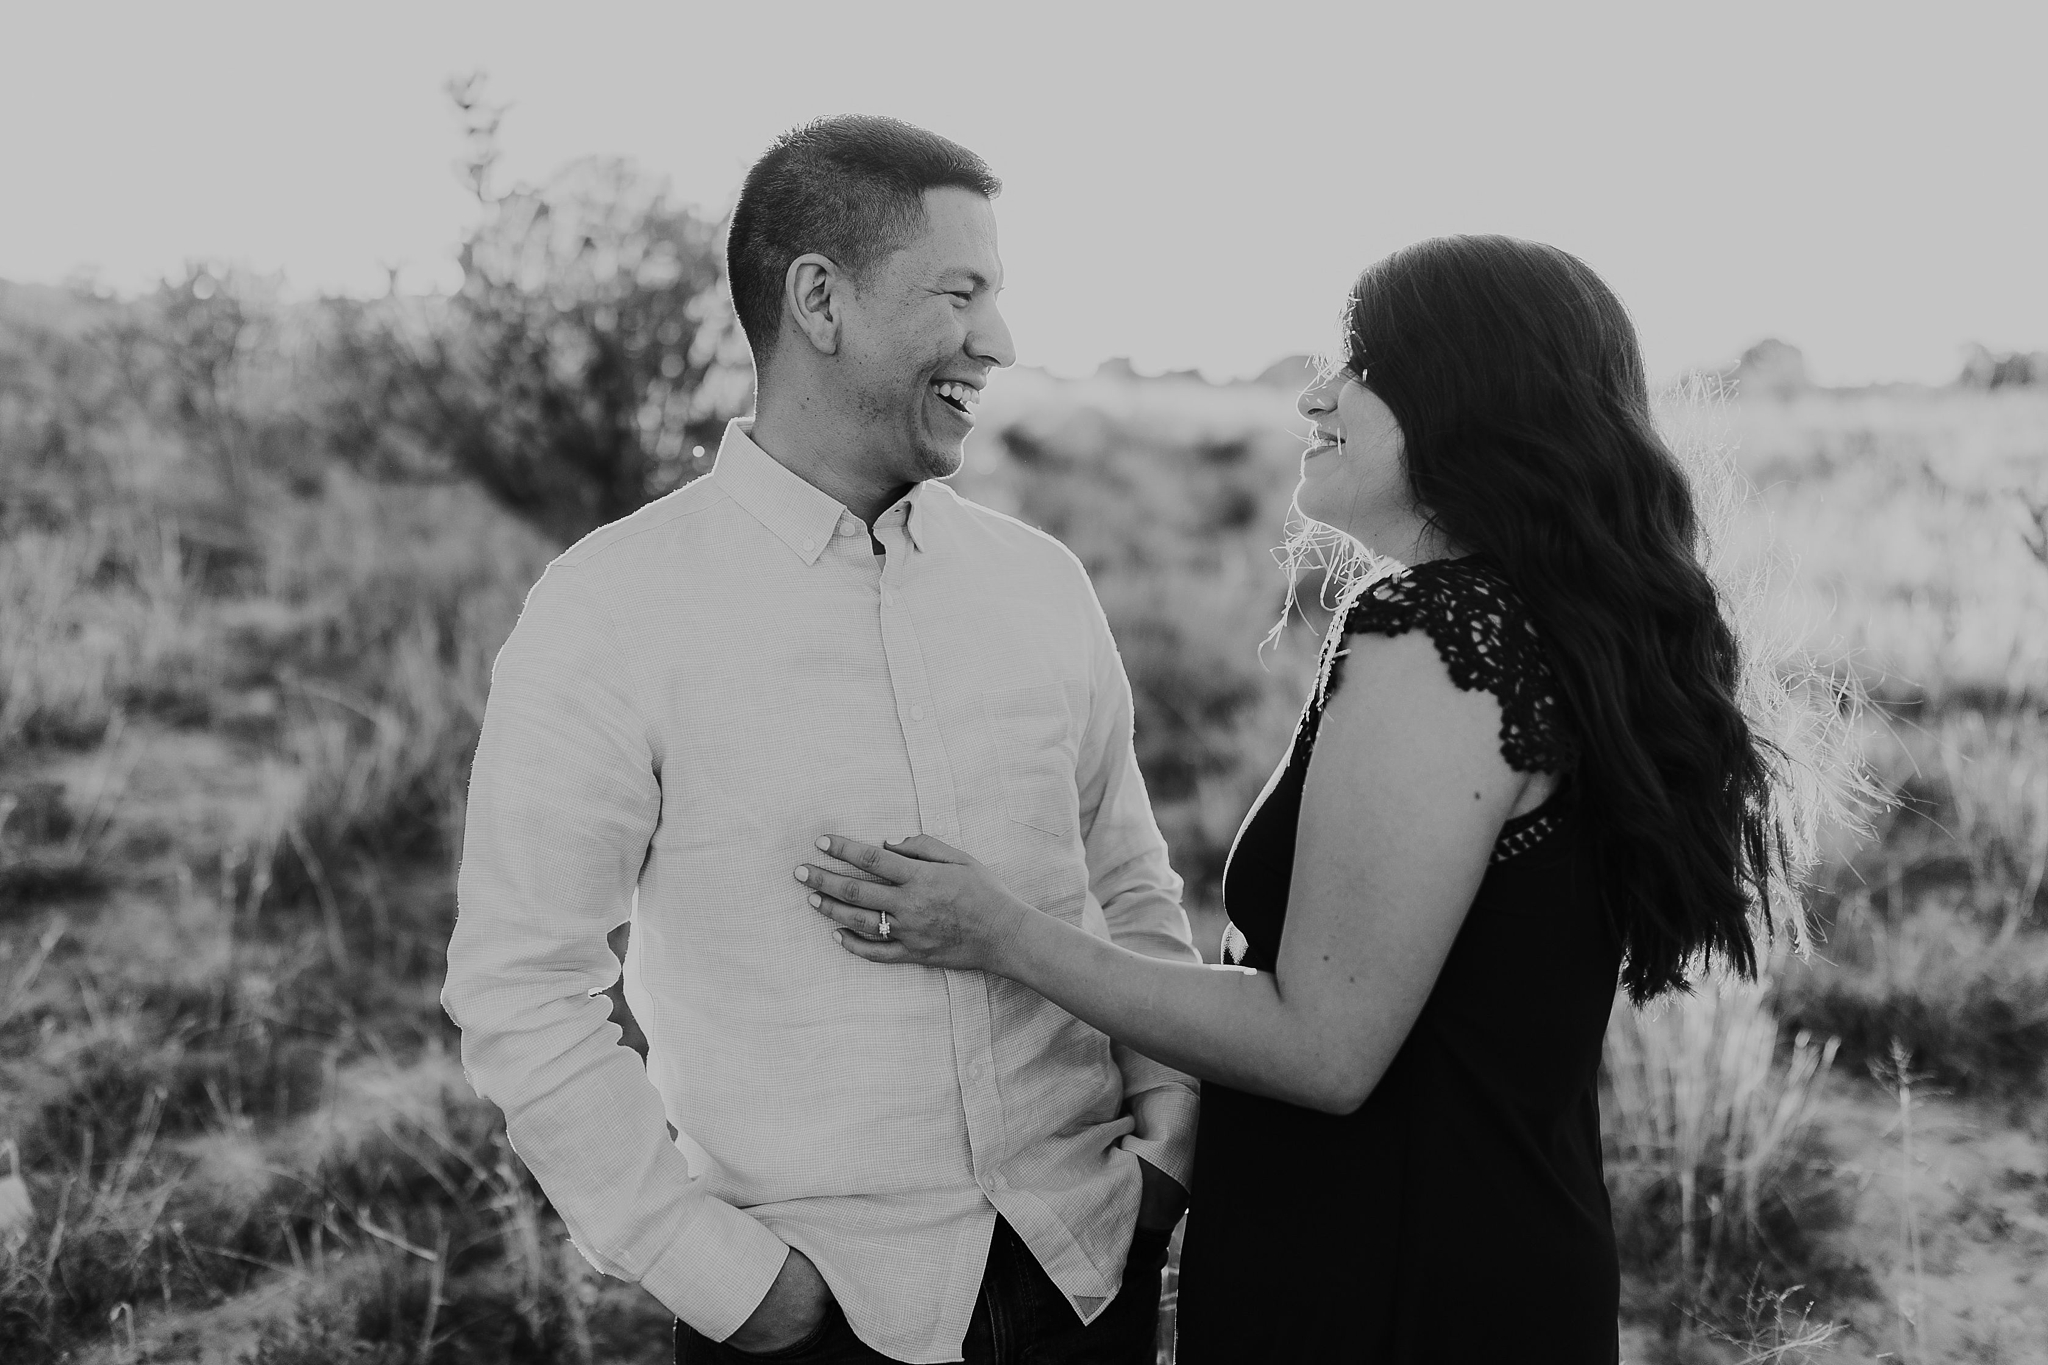 Alicia+lucia+photography+-+albuquerque+wedding+photographer+-+santa+fe+wedding+photography+-+new+mexico+wedding+photographer+-+new+mexico+wedding+-+new+mexico+engagement+-+white+mesa+engagement+-+desert+engagement_0019.jpg